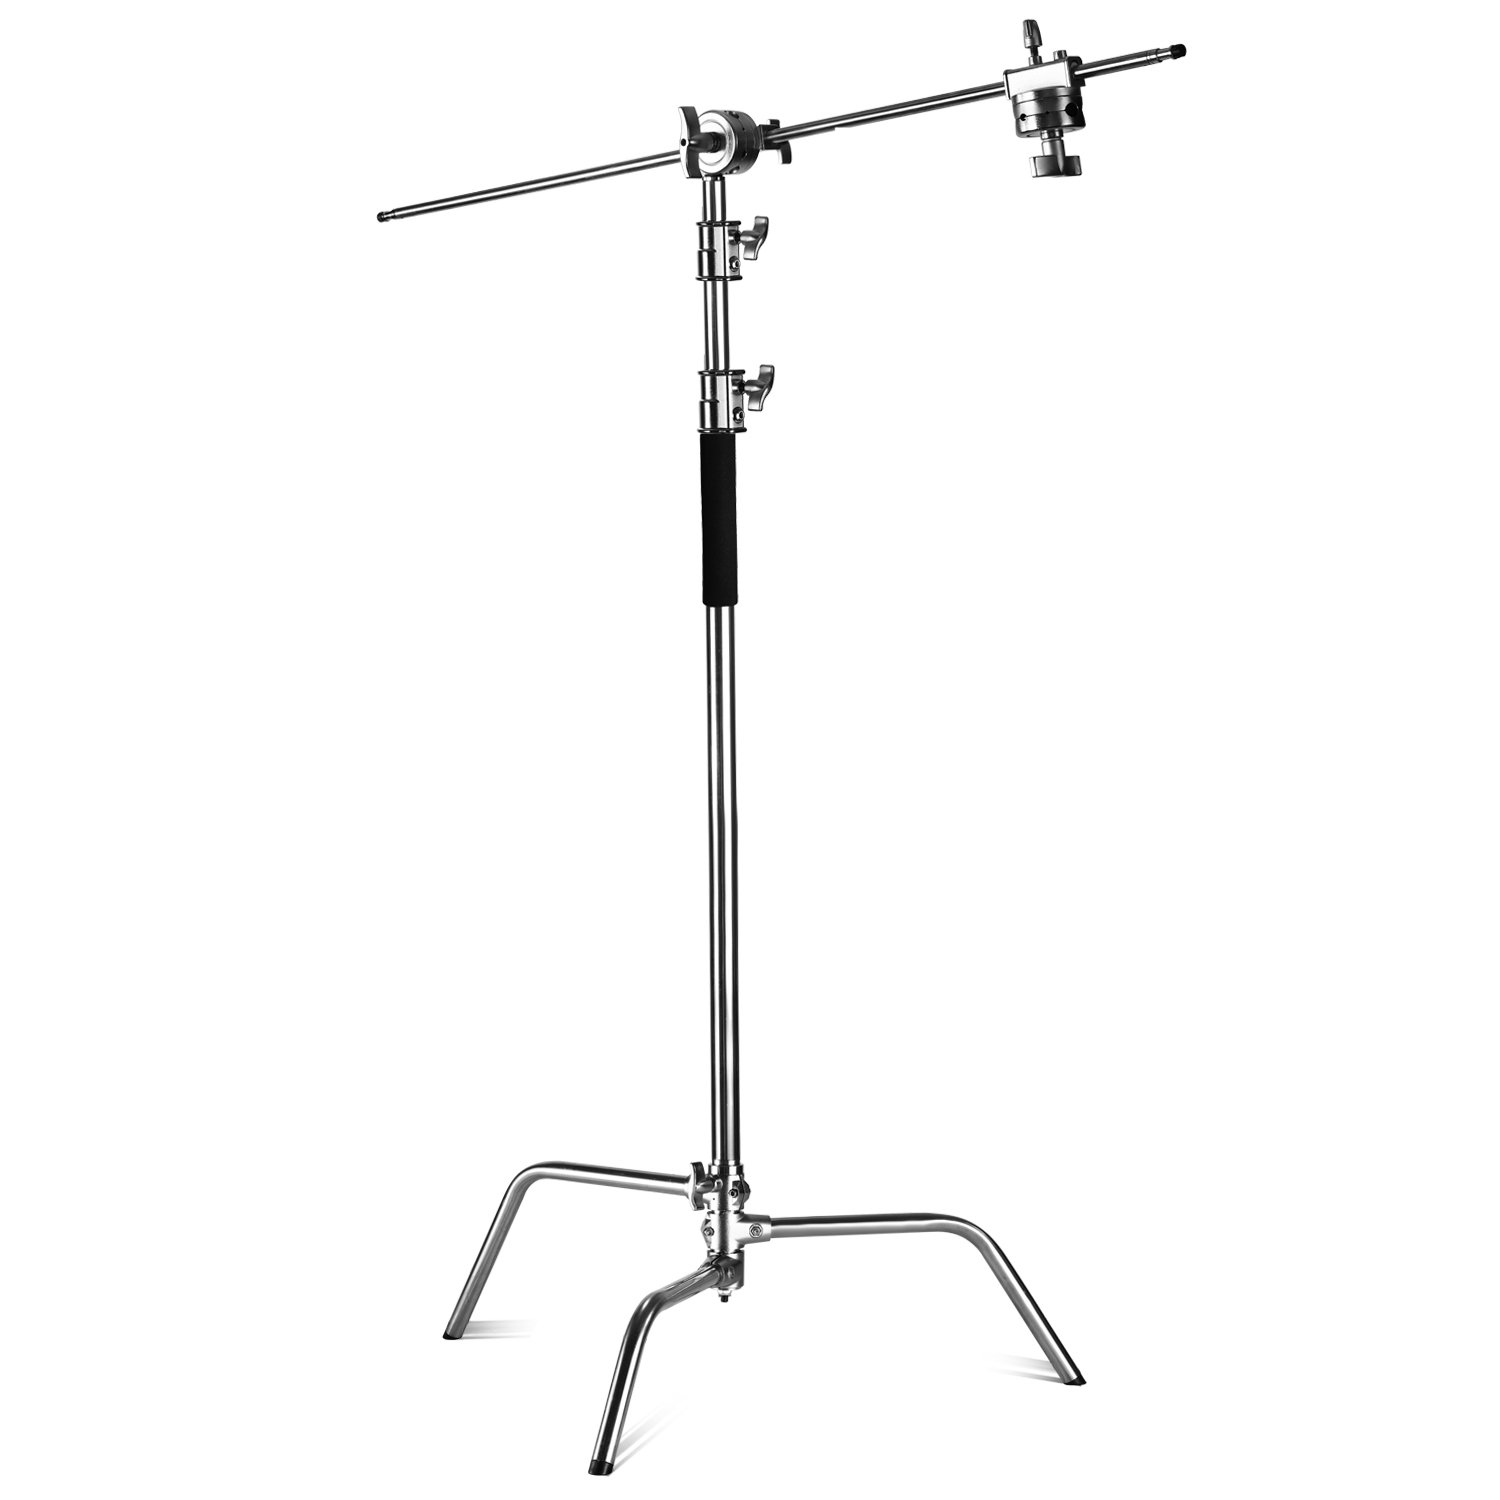 Neewer Pro Version Photography Adjustable 102 inches/260 Centimeters Light Stand Tripod with Caster Wheels and Carrying Case for Ring Light Studio LED Light Softbox Reflector Umbrella and Background 10087450